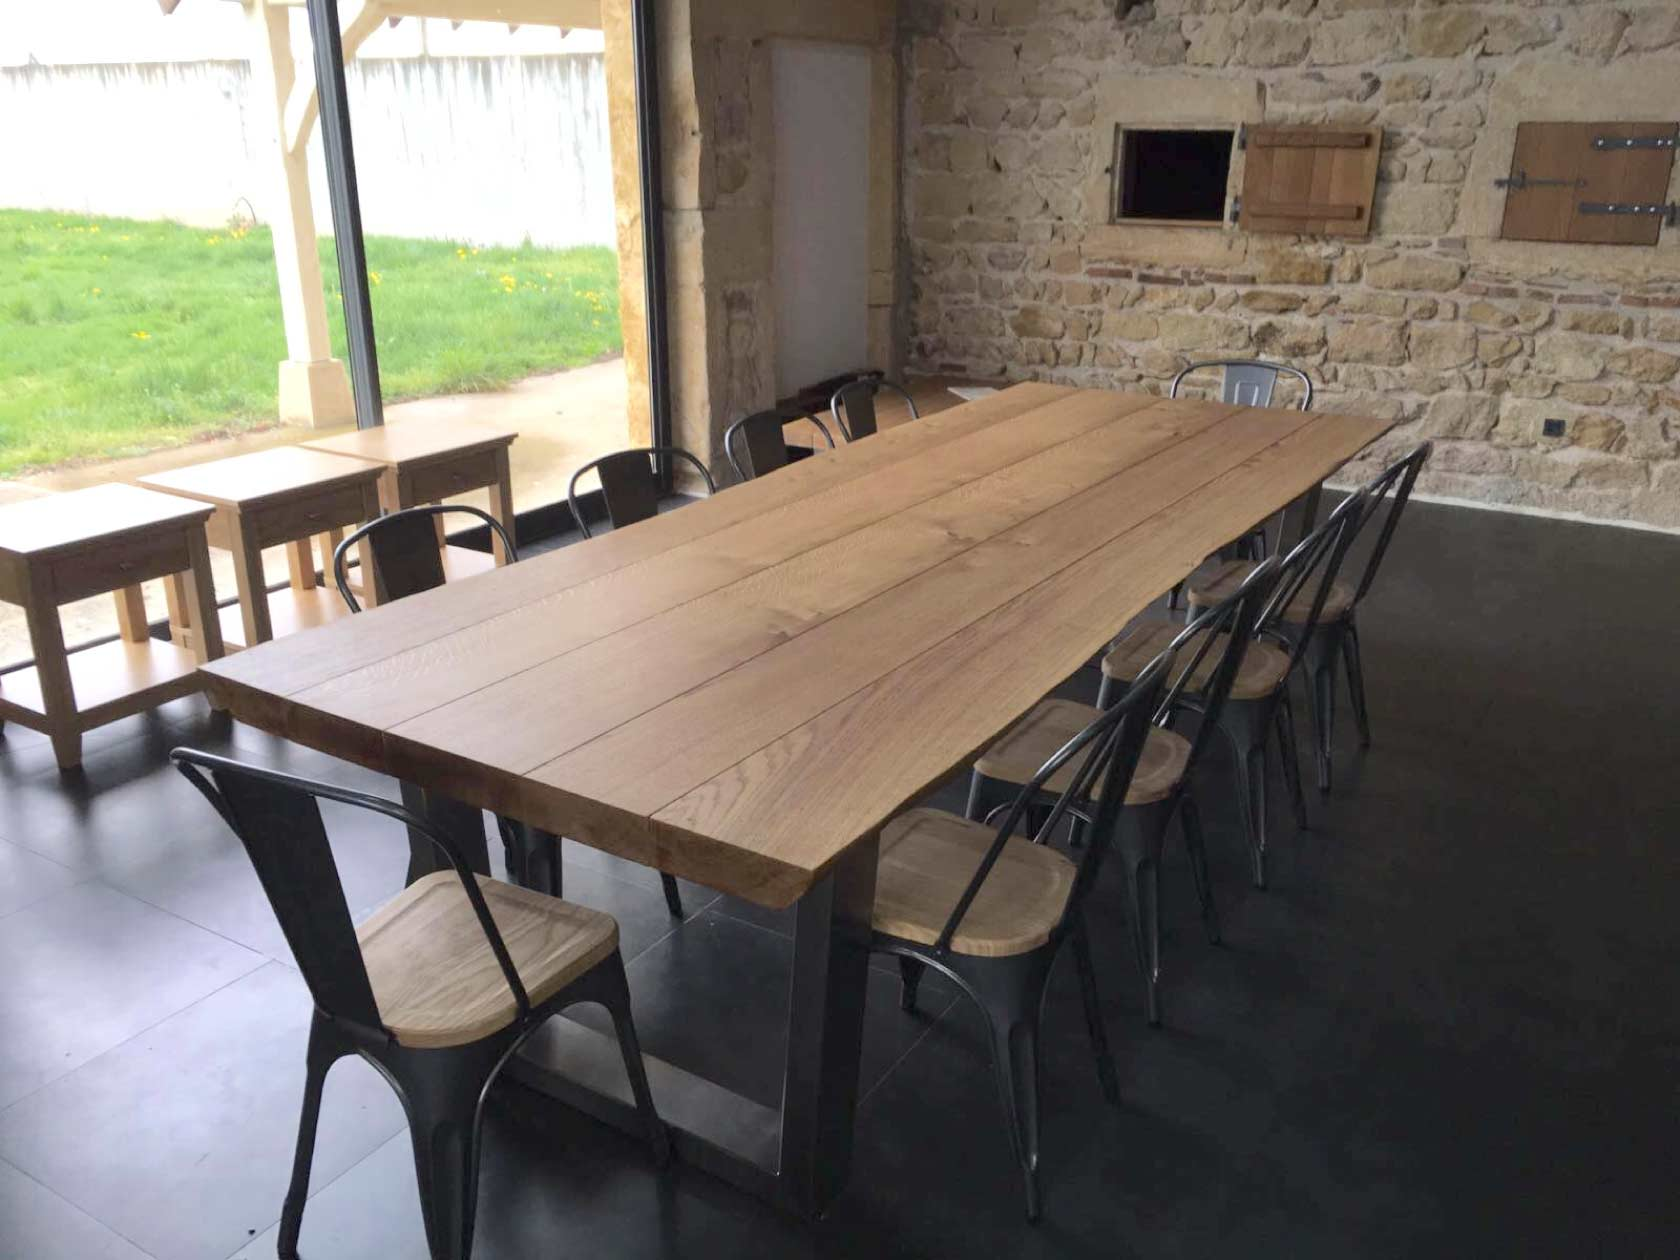 rustic-oak-dining-table-from-abacus-tables-3m-x-1.1m-project-344